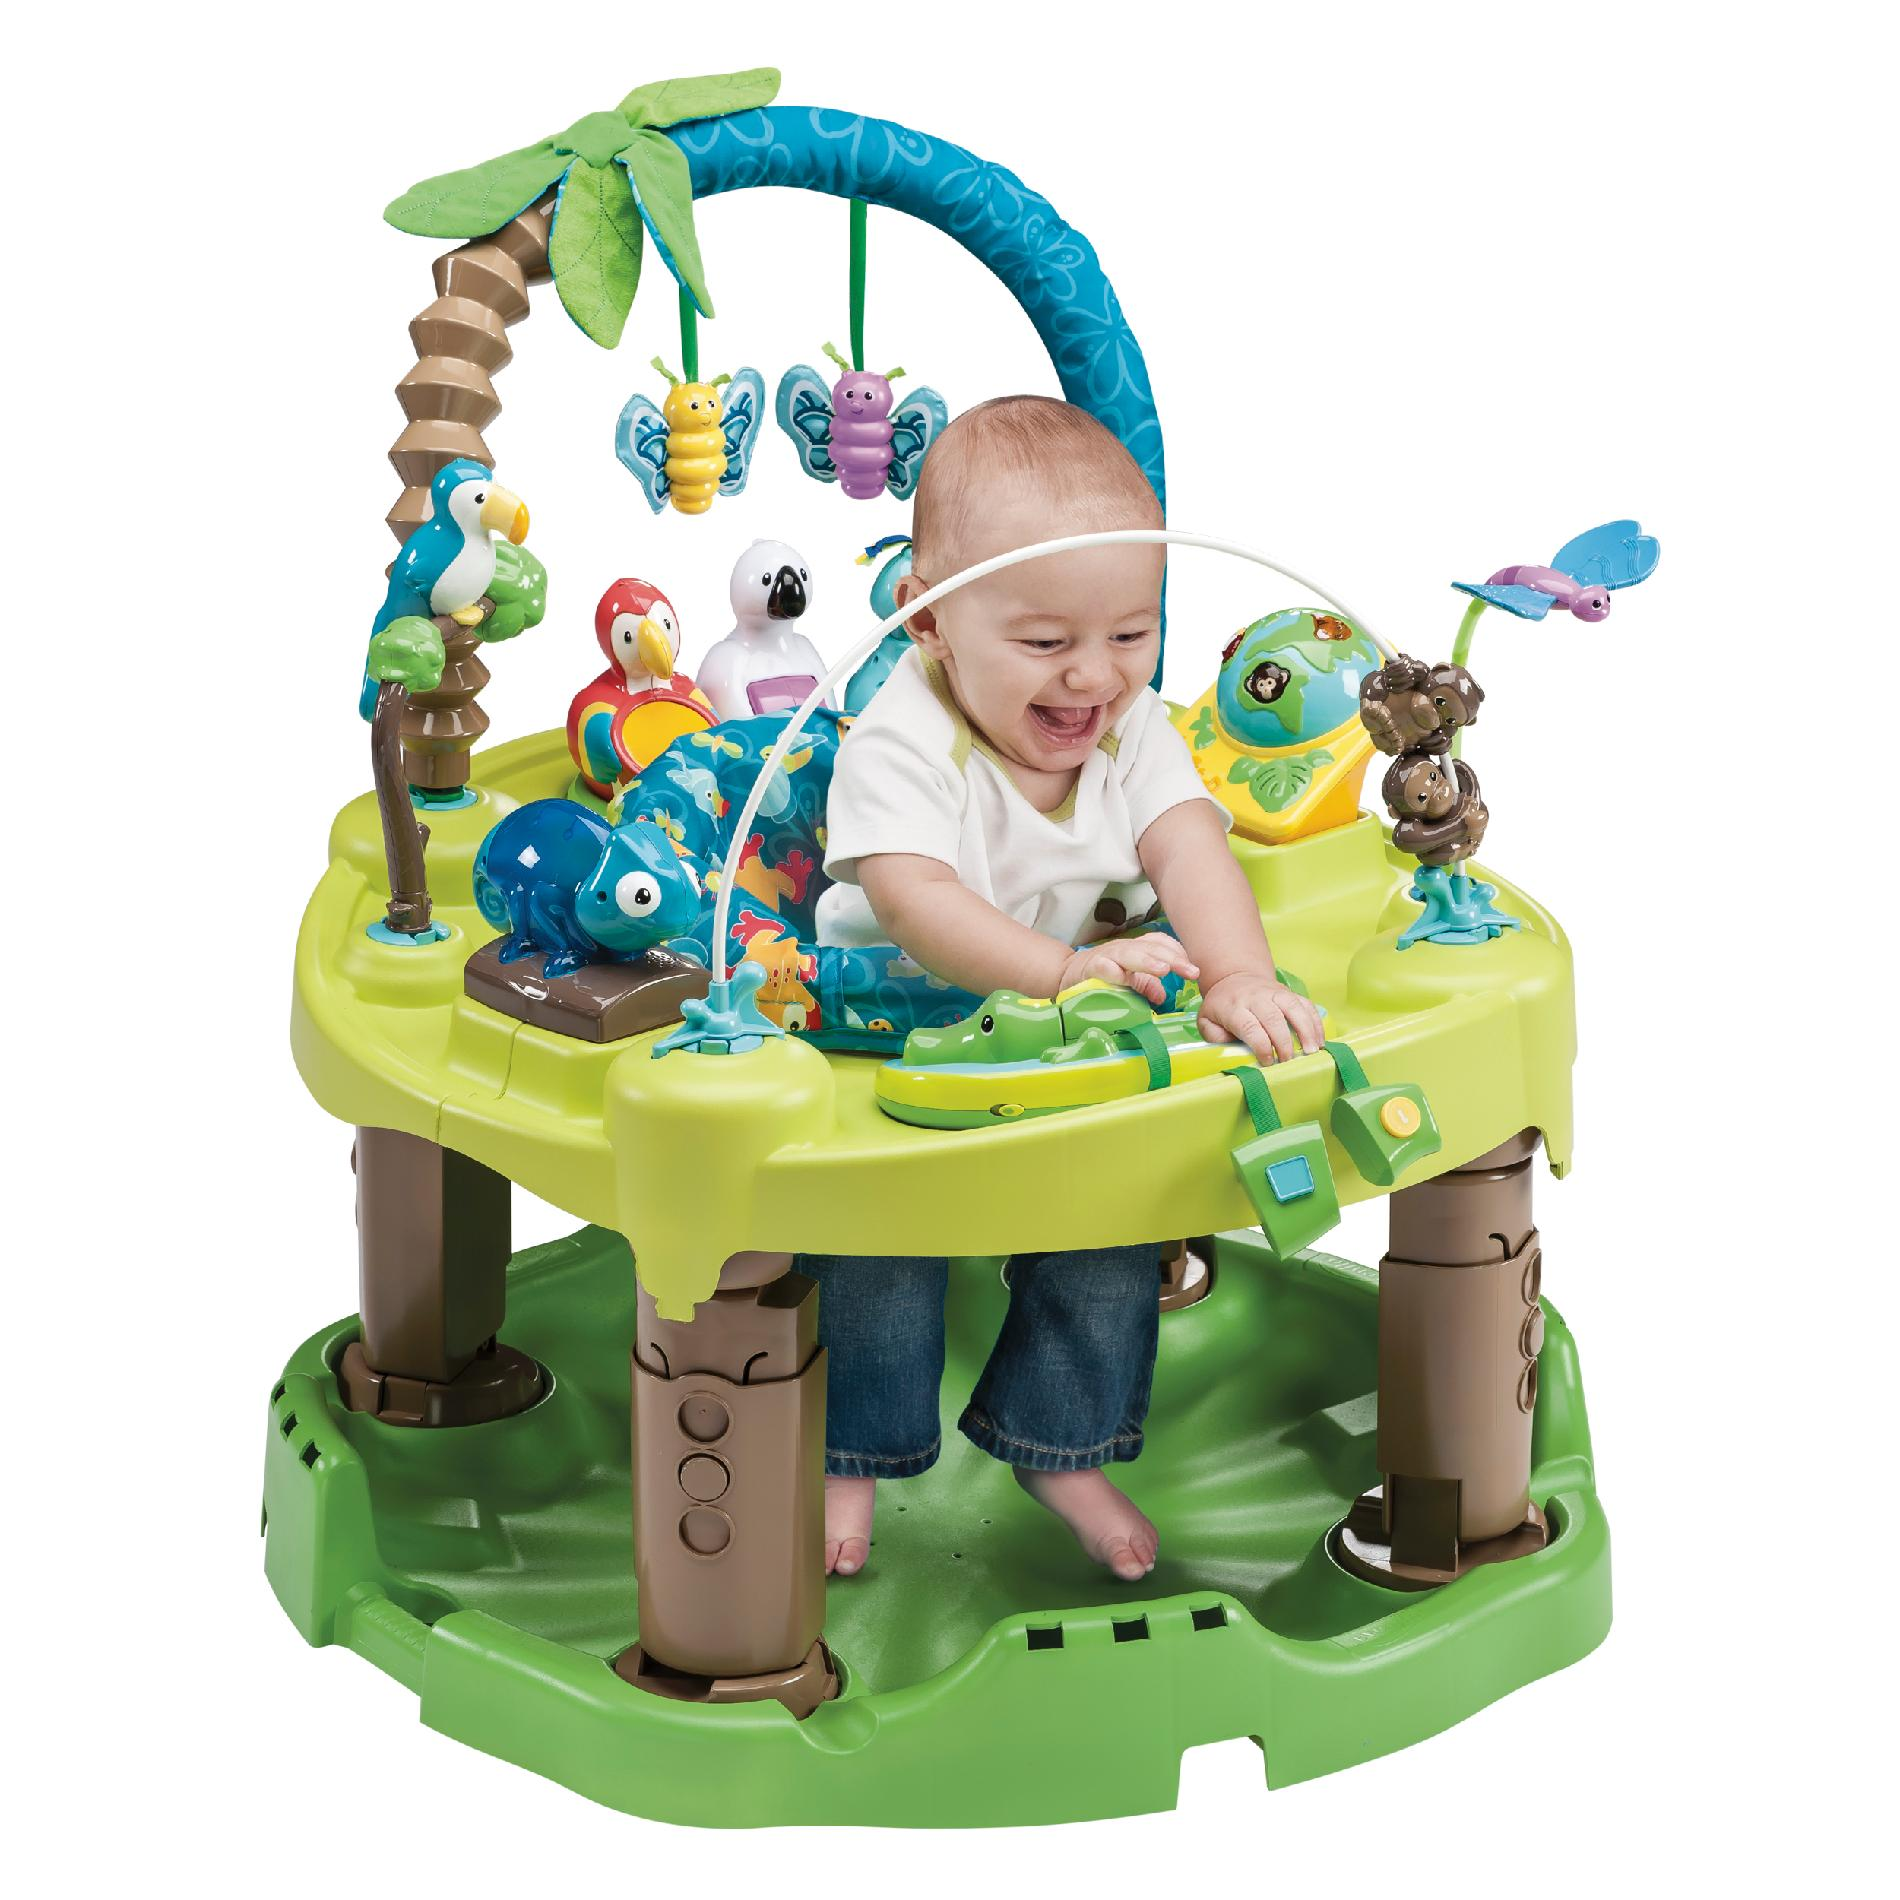 evenflo majestic high chair jungle garelick fishing spin prod 954148512 hei333 andwid333 andop sharpen1